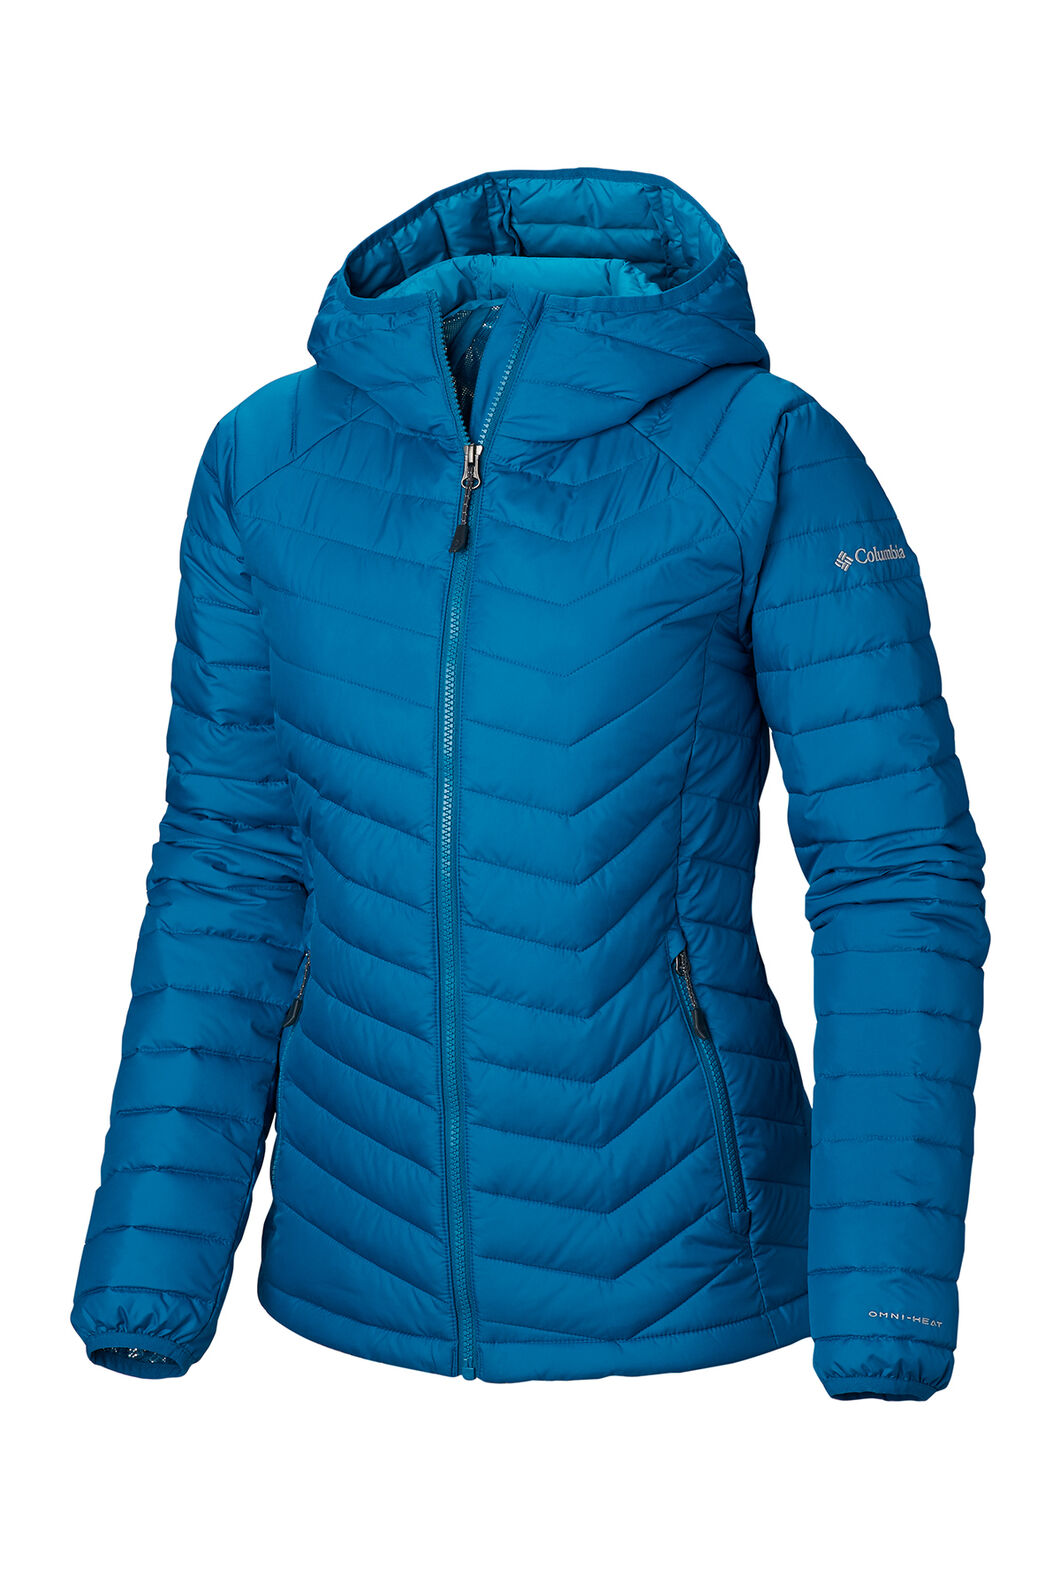 Columbia Powder Lite Hooded Jacket - Women's, Siberia, hi-res